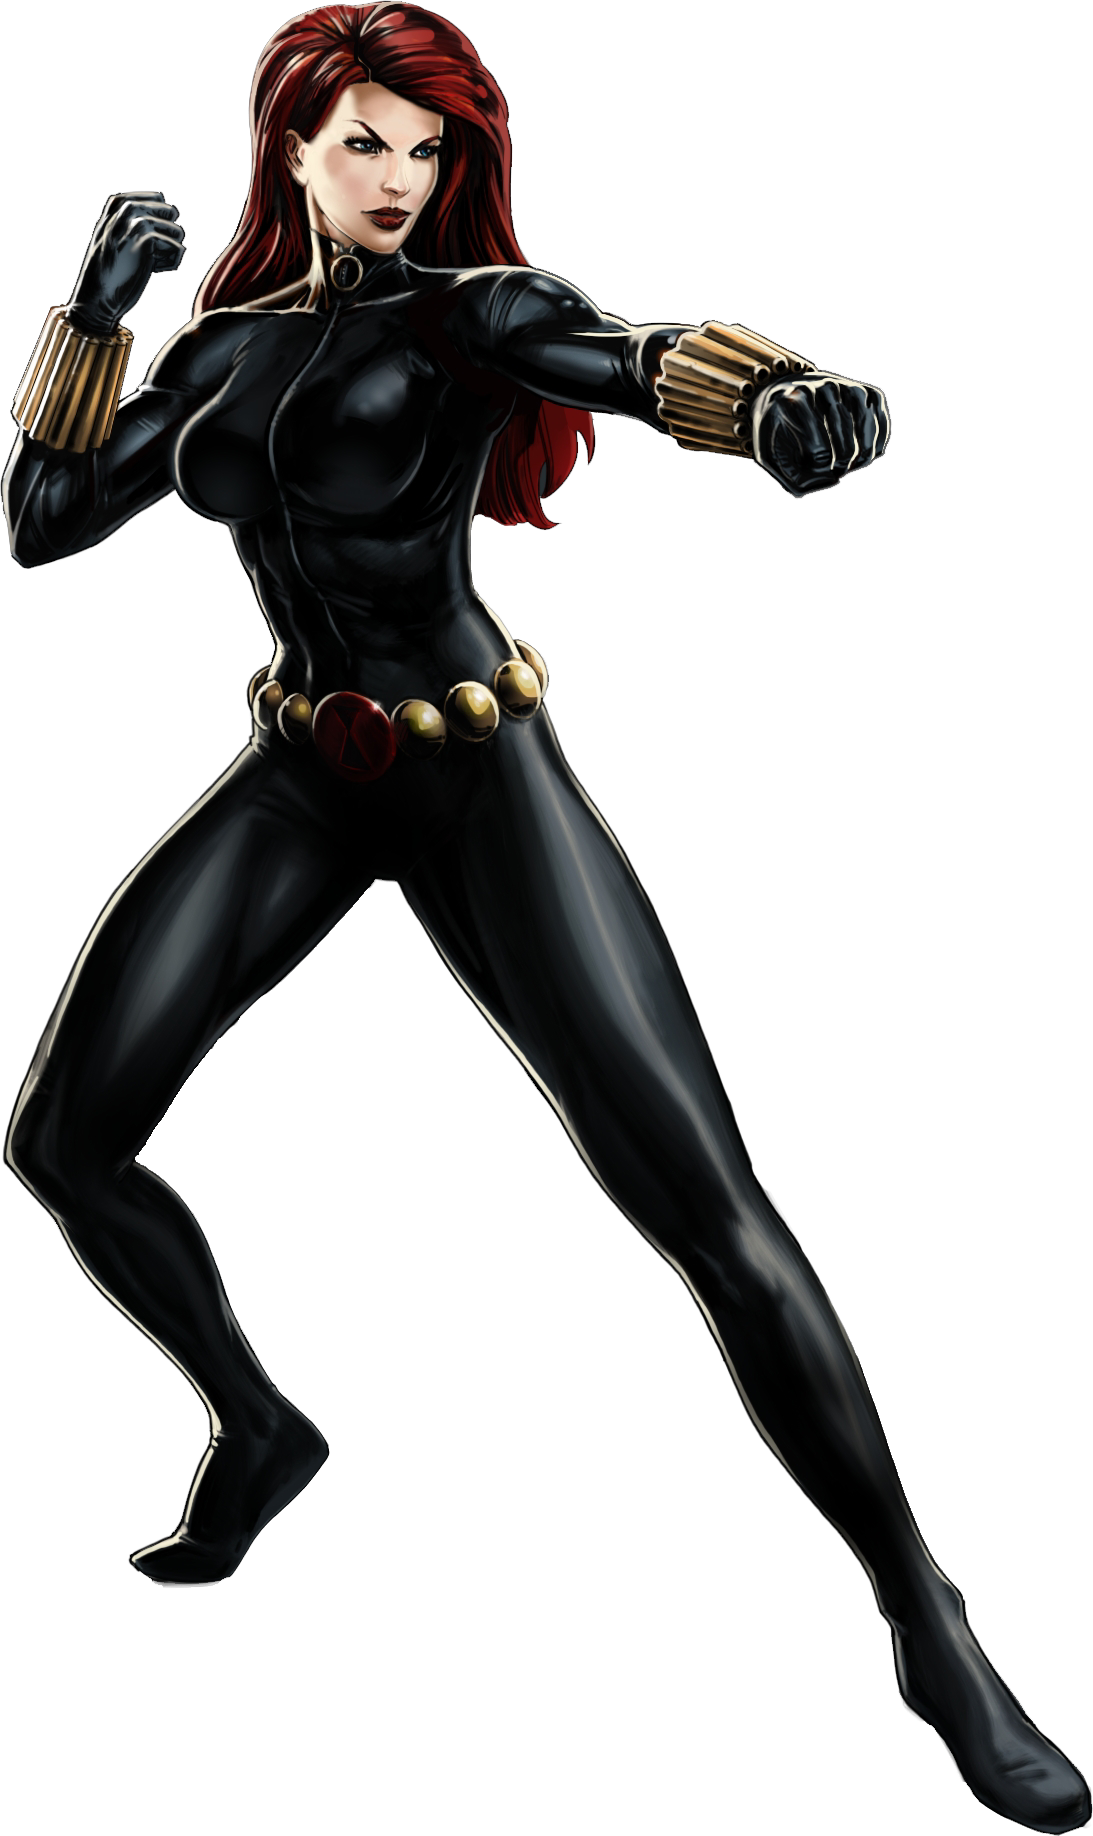 Black woman superhero png. Latest my style pinterest